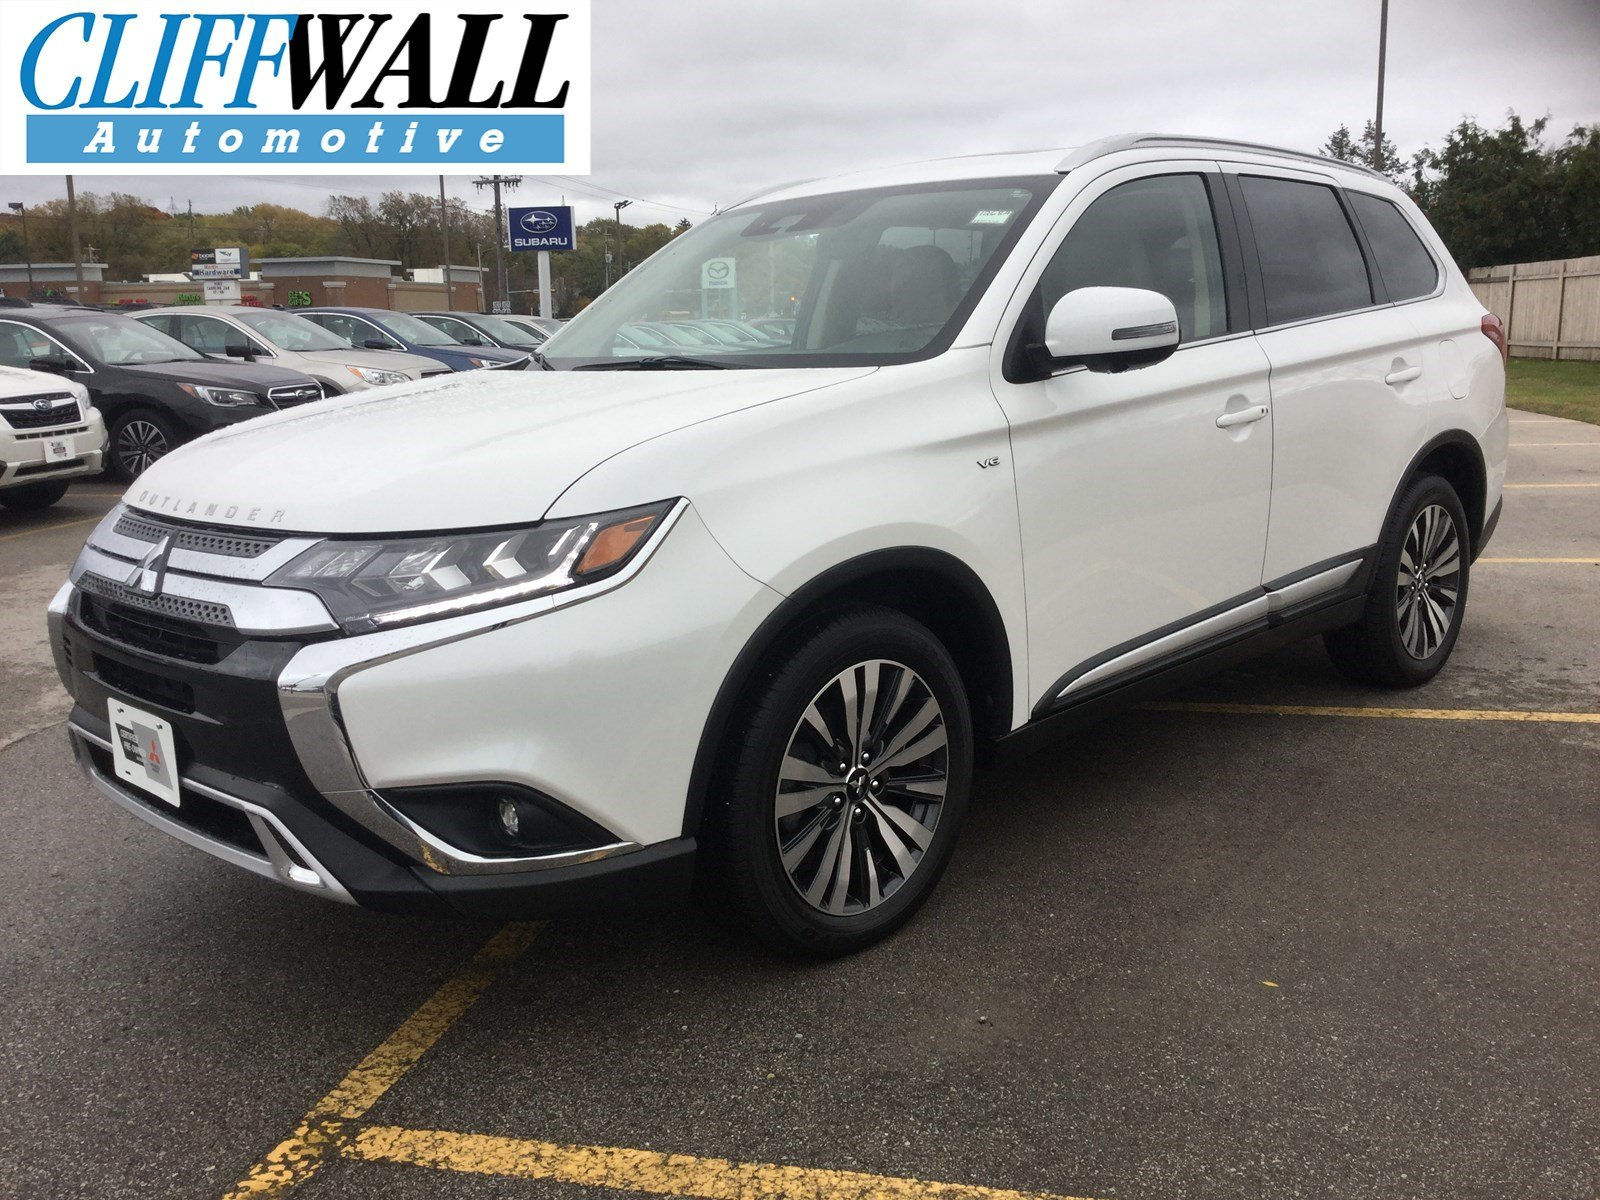 Used 2019 Mitsubishi Outlander For Sale at Cliff Wall Mazda